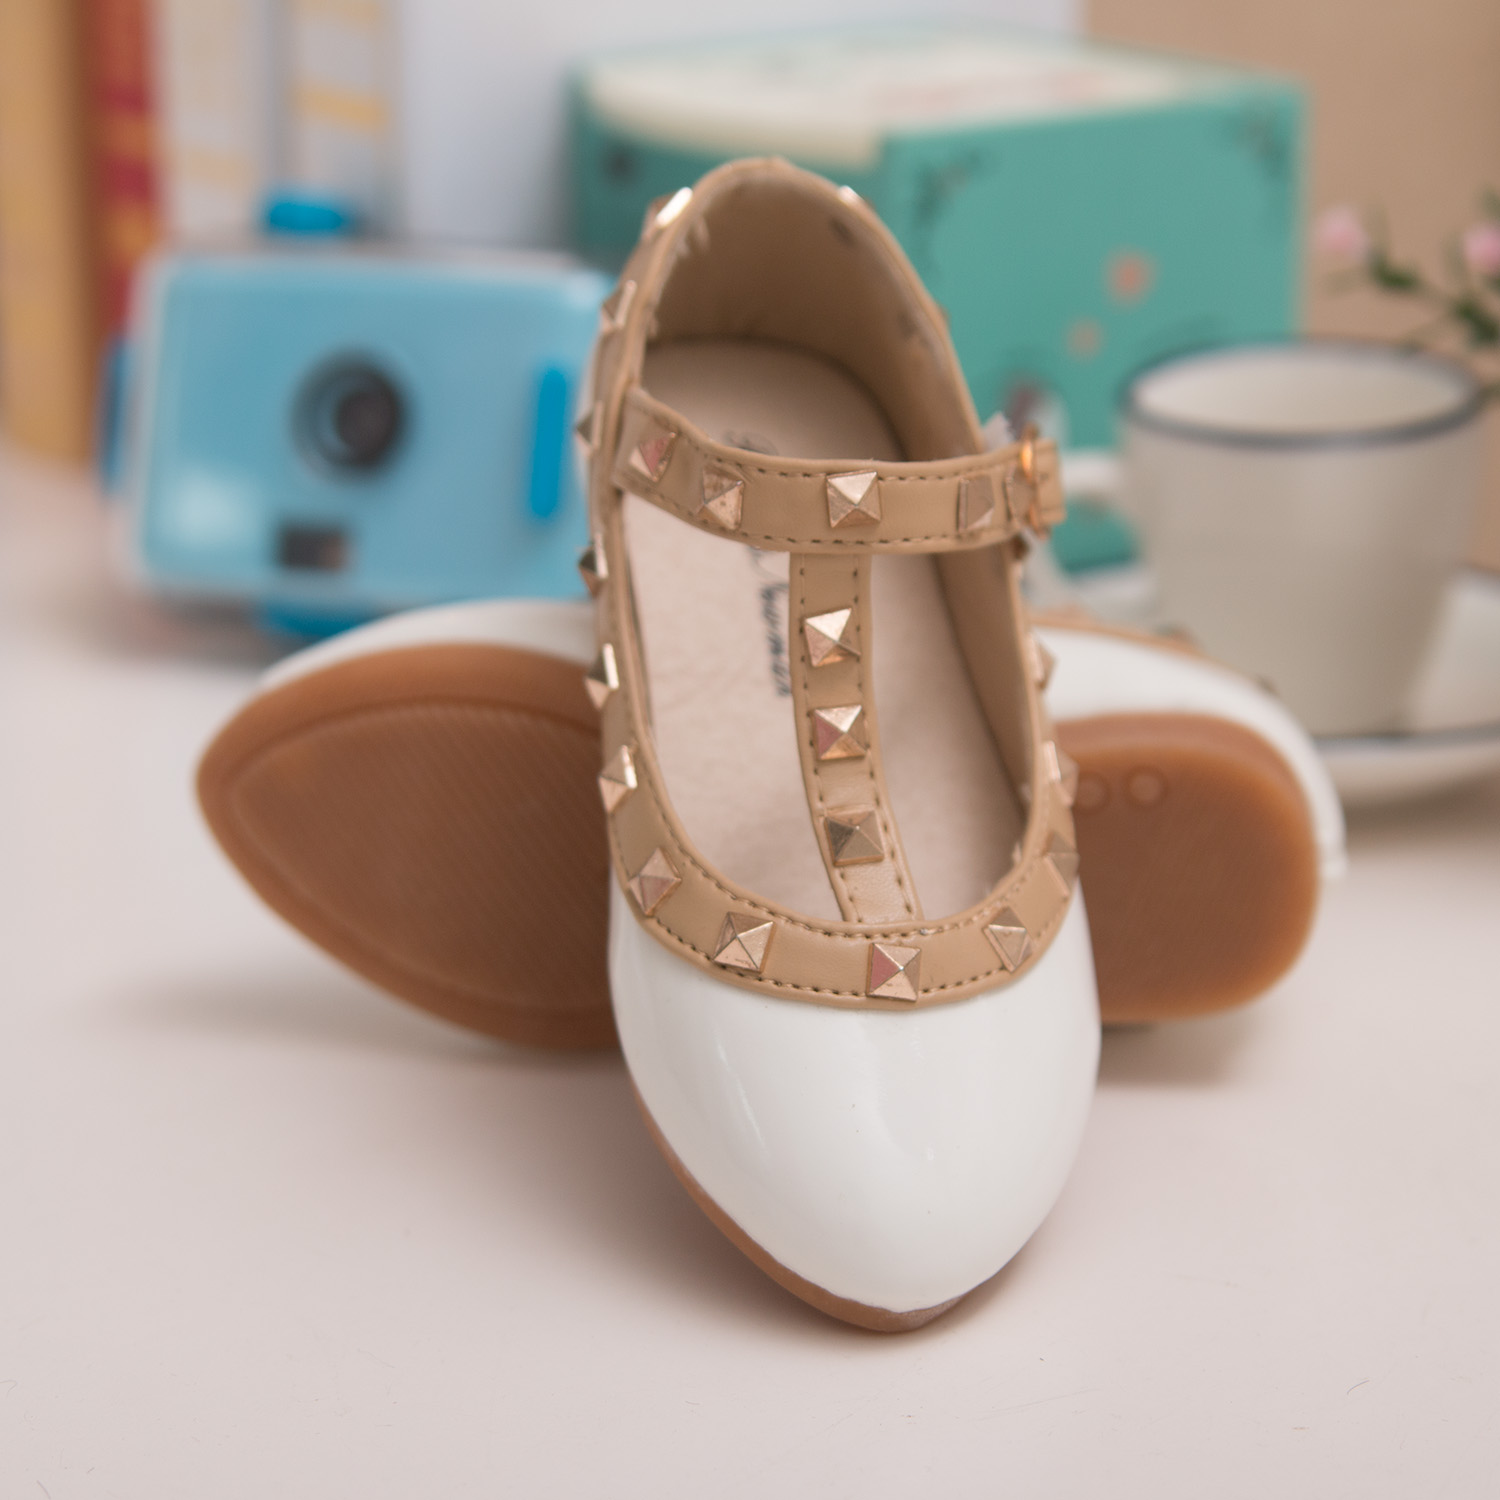 2016 Hot sale girls sandals shoes leather children girls princess shoes kids dancing flat shoes for girls rivet baby sandals(China (Mainland))